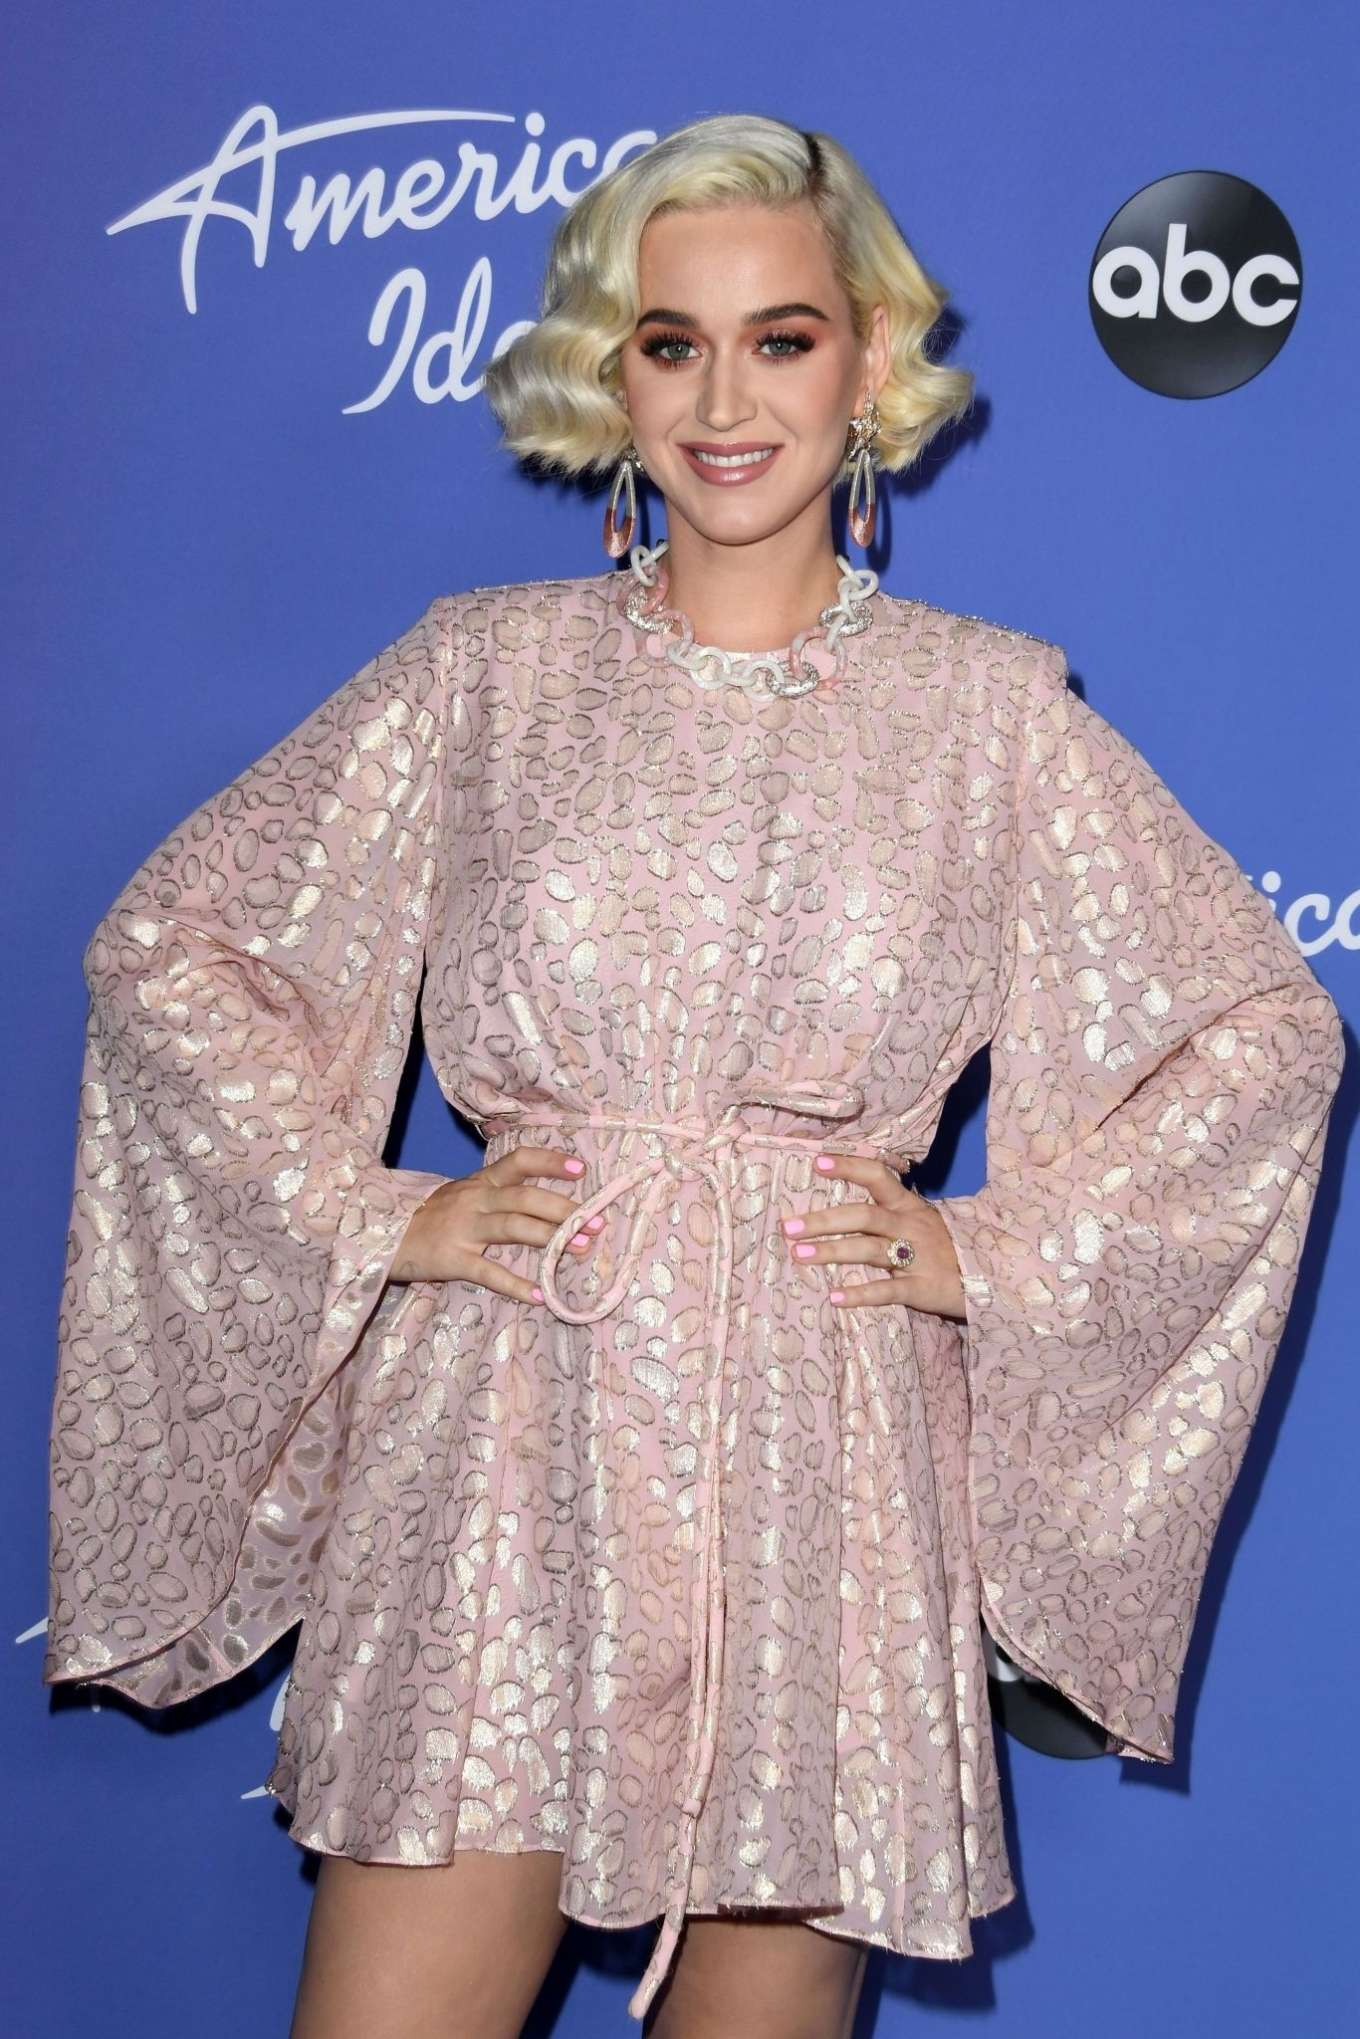 Katy Perry 2020 : Katy Perry – premiere event for new American Idol season in Hollywood-05